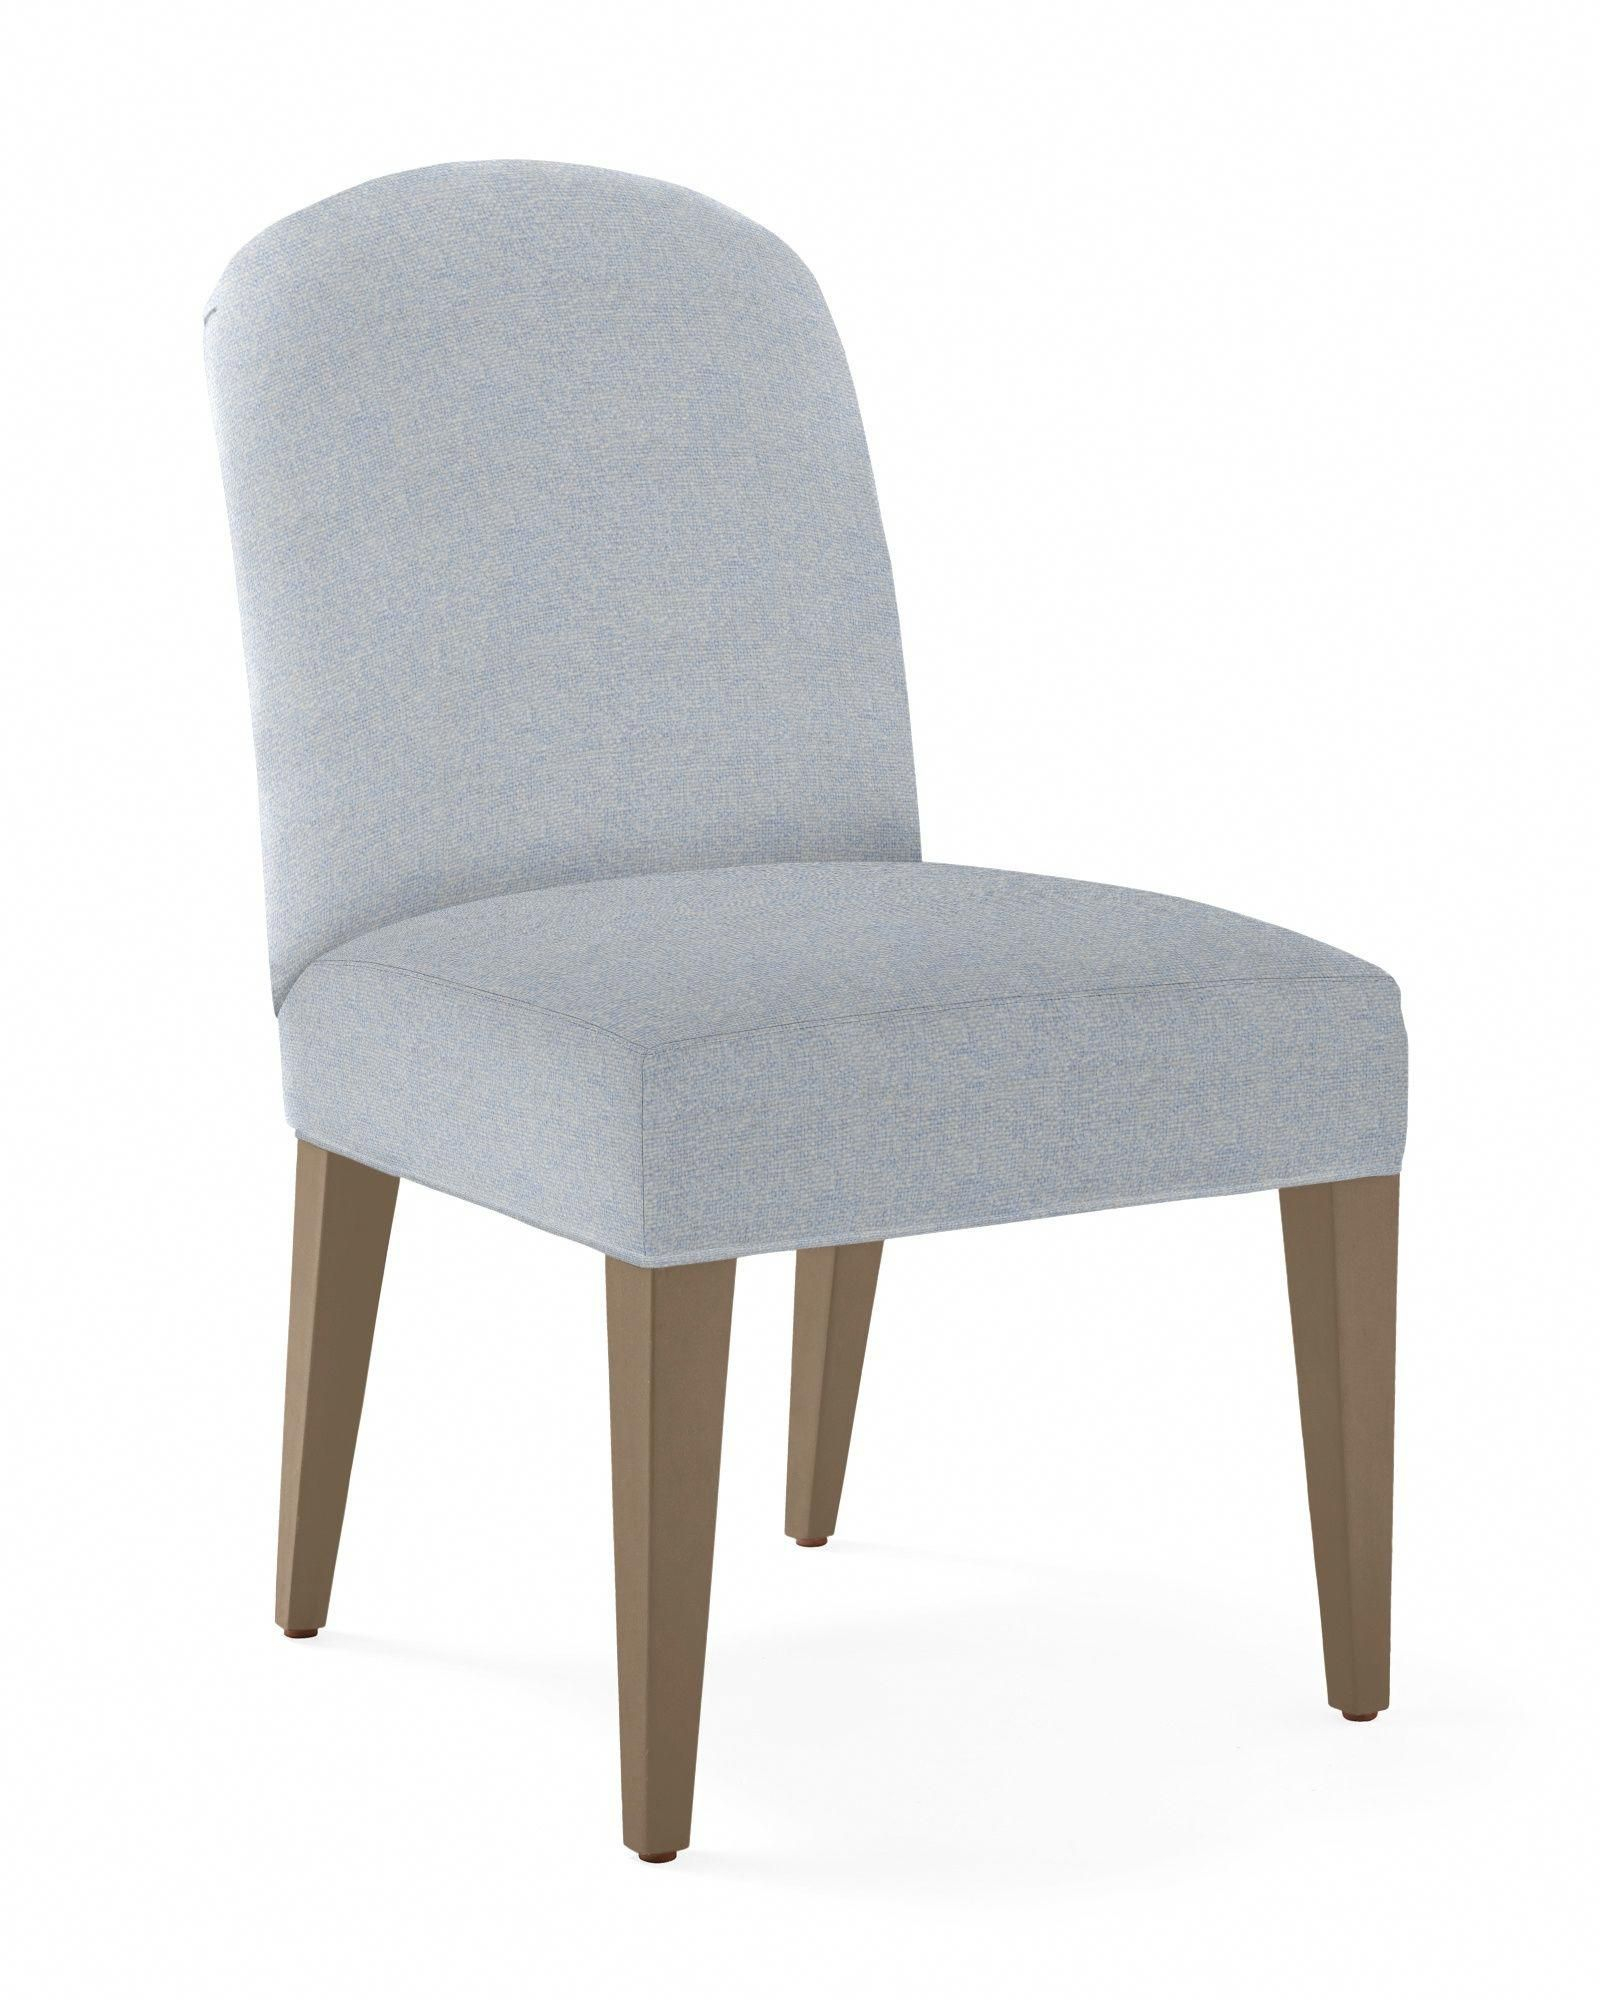 Ames Dining Chair – Serena & Lily #ameschair | Styling Chairs In Ames Arm Sofa Chairs (View 8 of 25)